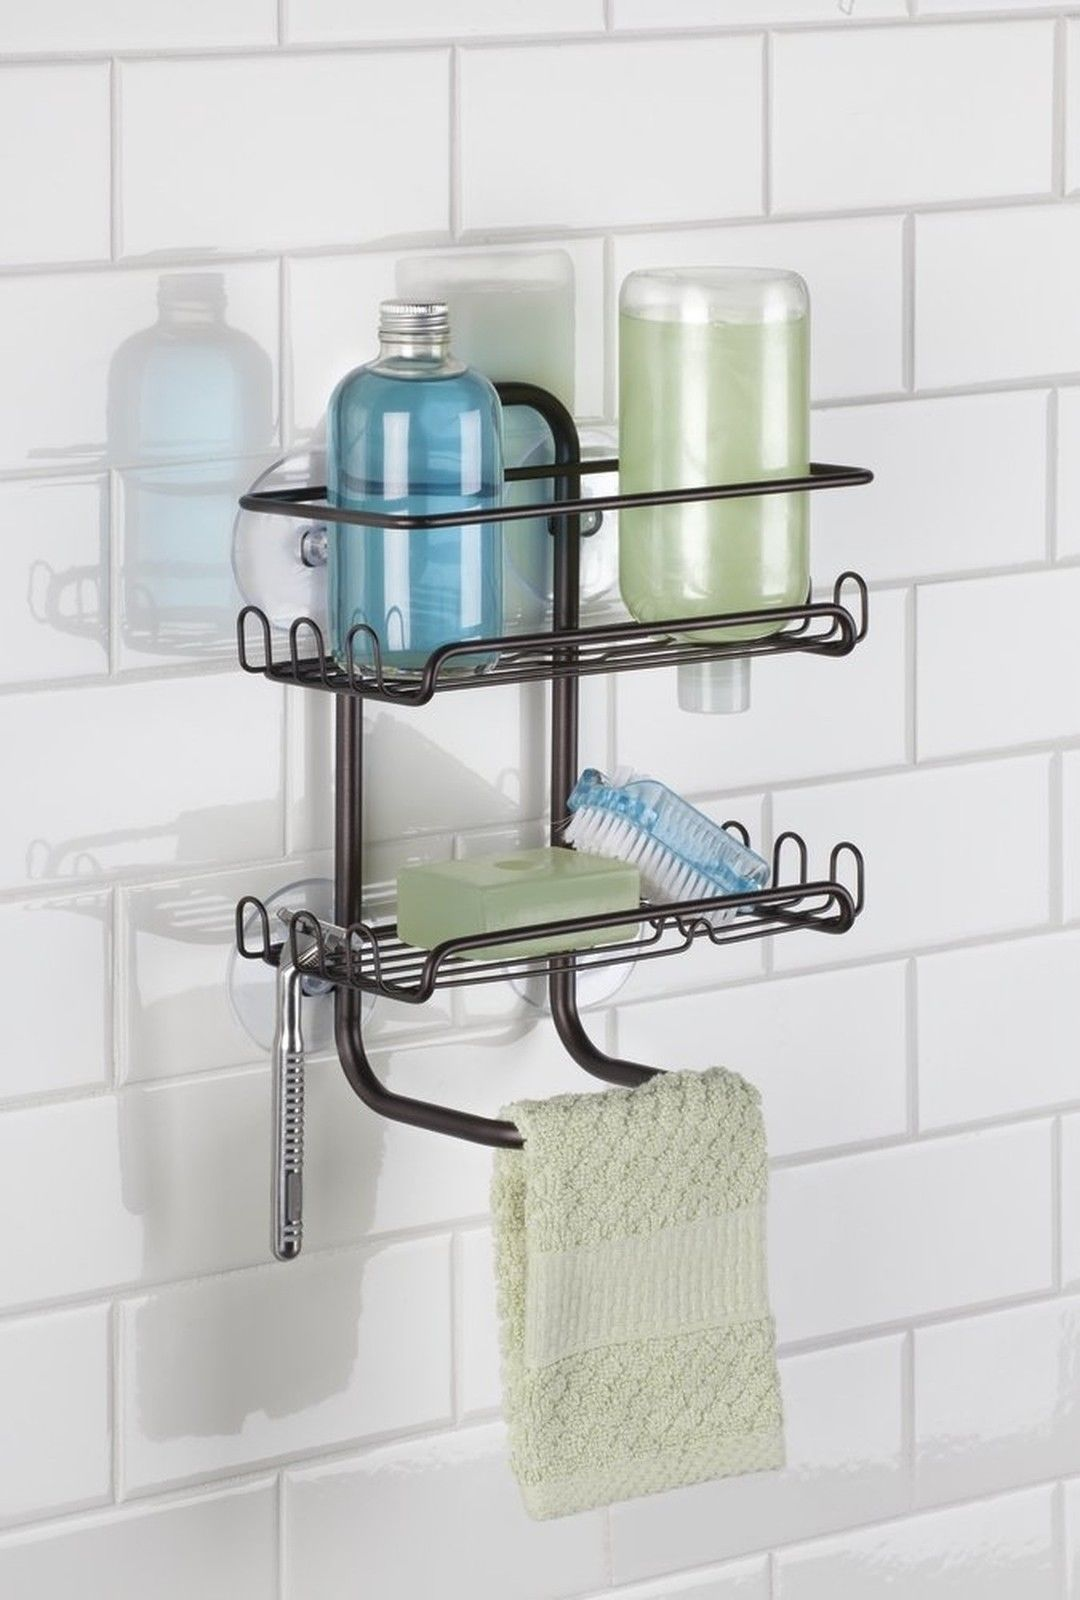 Shelves For Shampoo And Soaps; Hooks On Both Sides To Hang